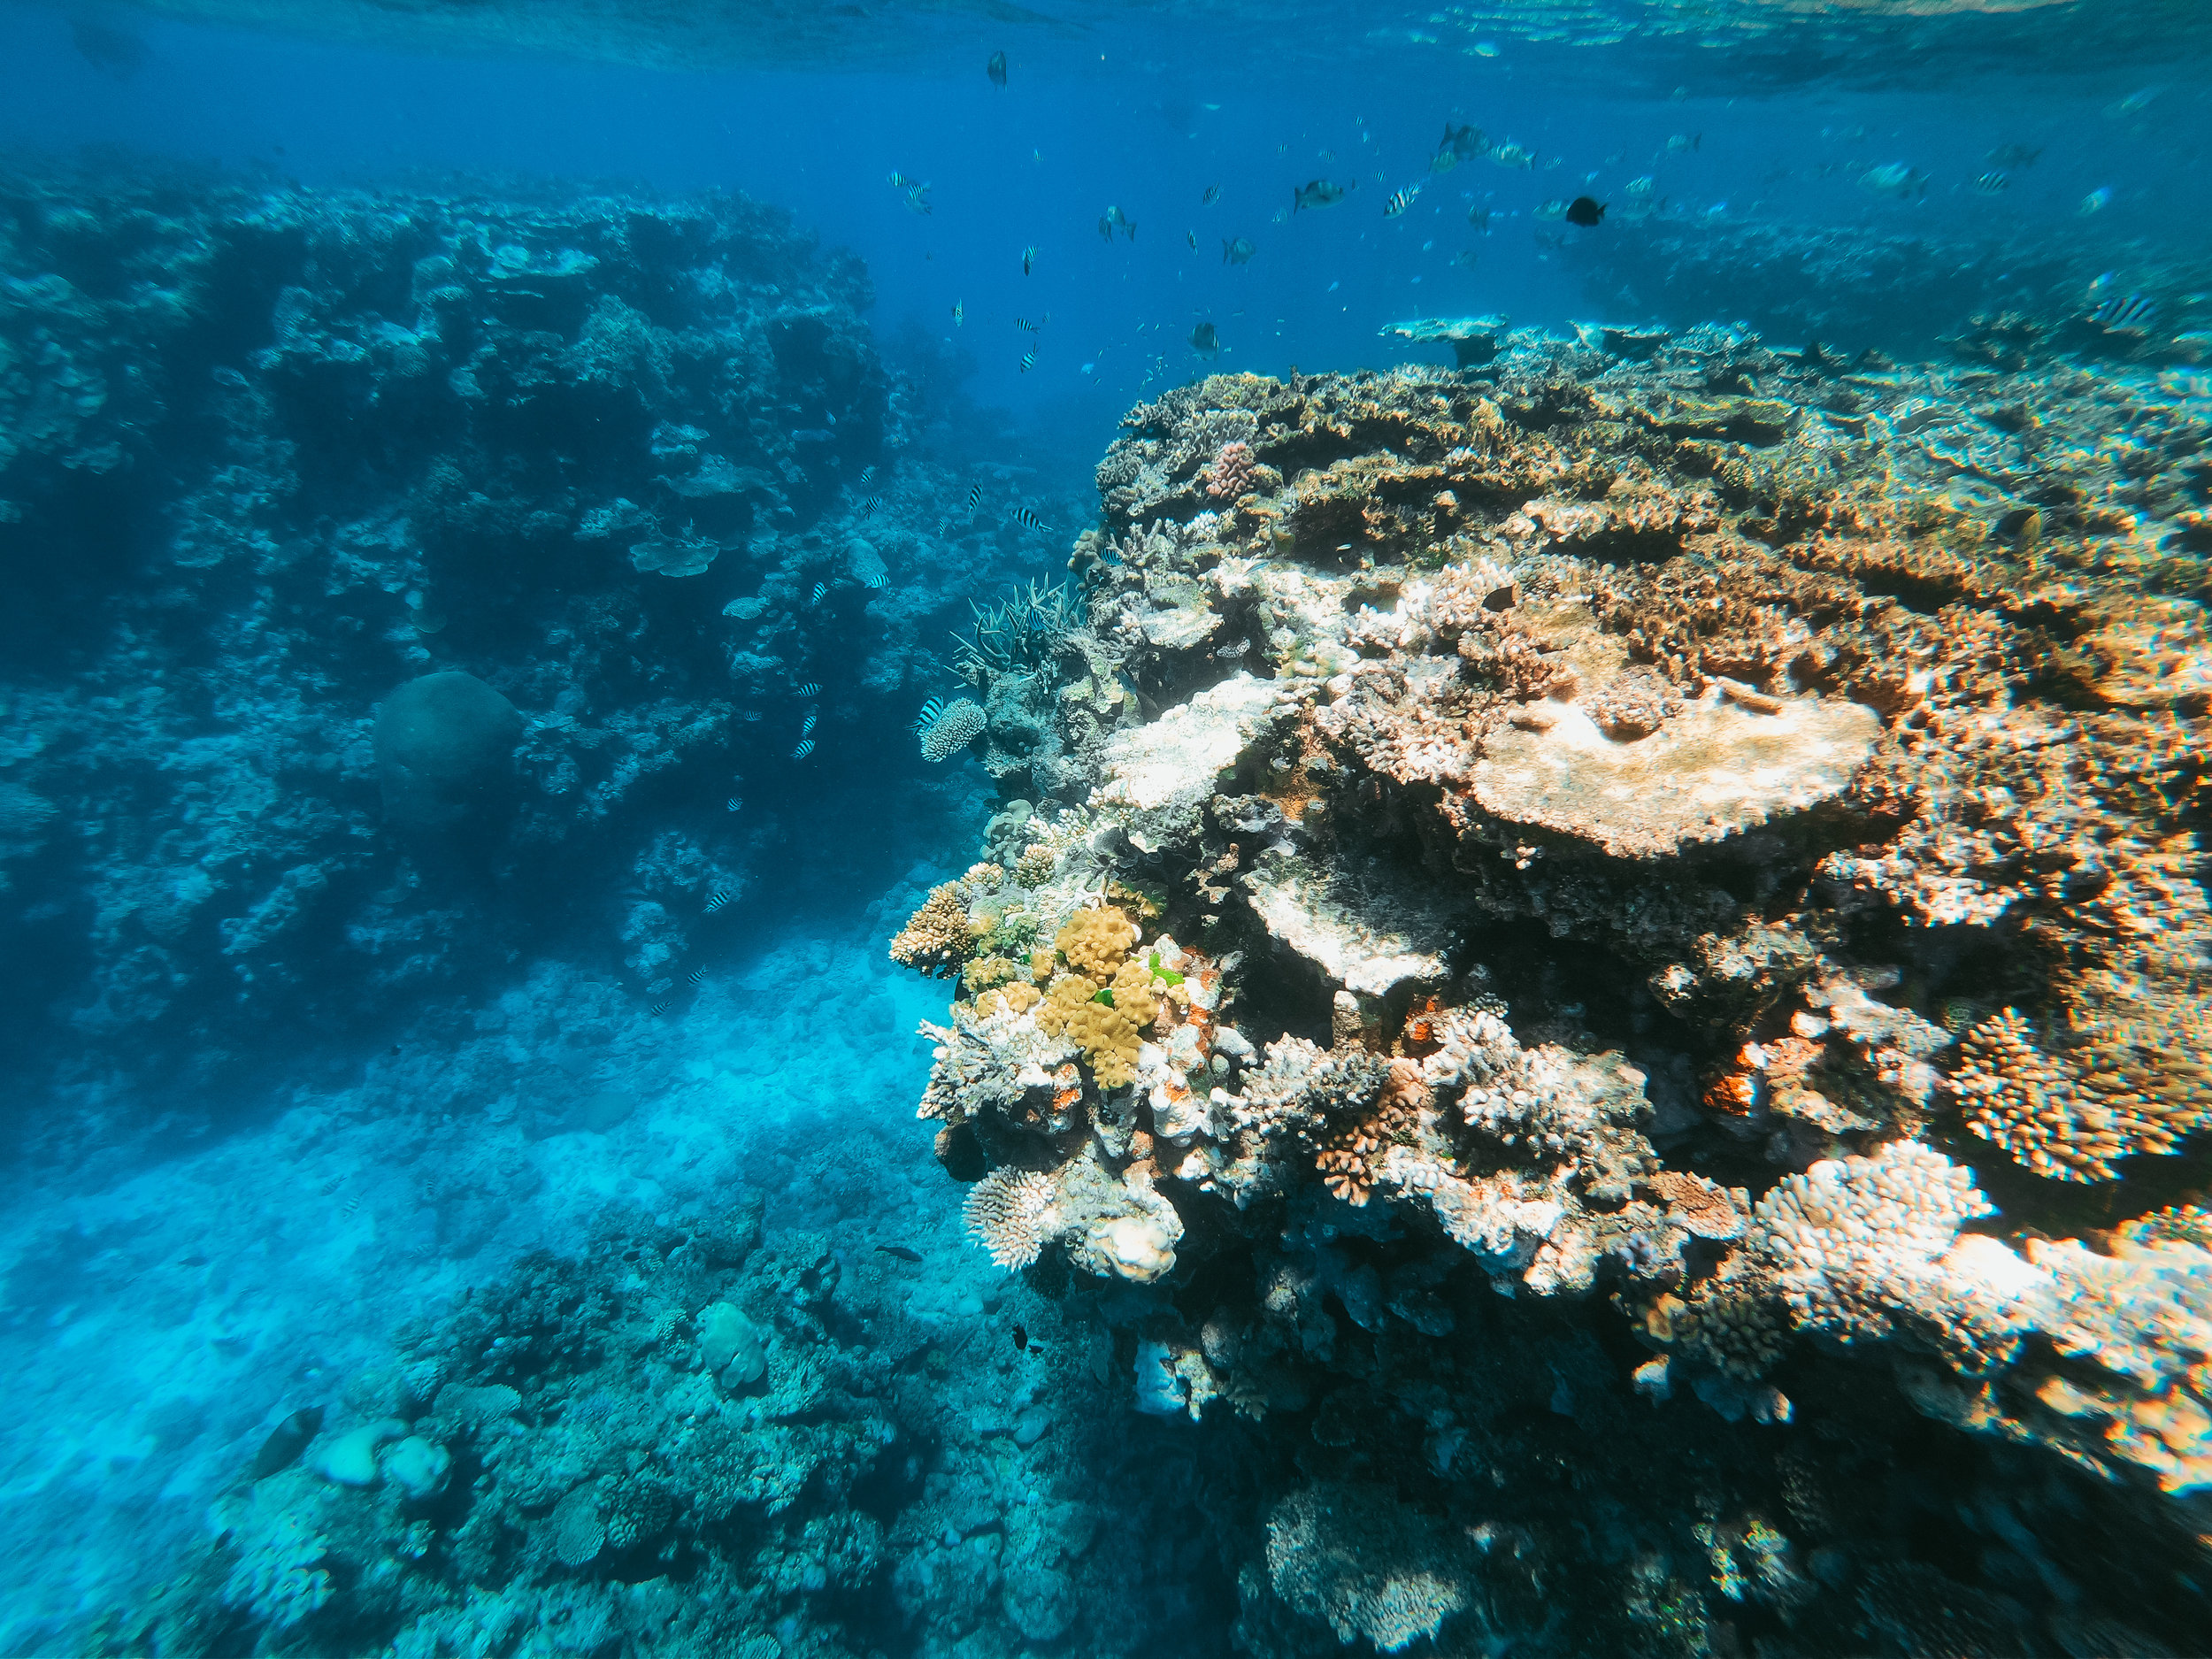 The bacteria associated with a coral reef are critical to keeping the whole environment healthy. However, small changes can turn a healthy community of bacteria into a damaging one, and fast. Photo credit: Fezbot